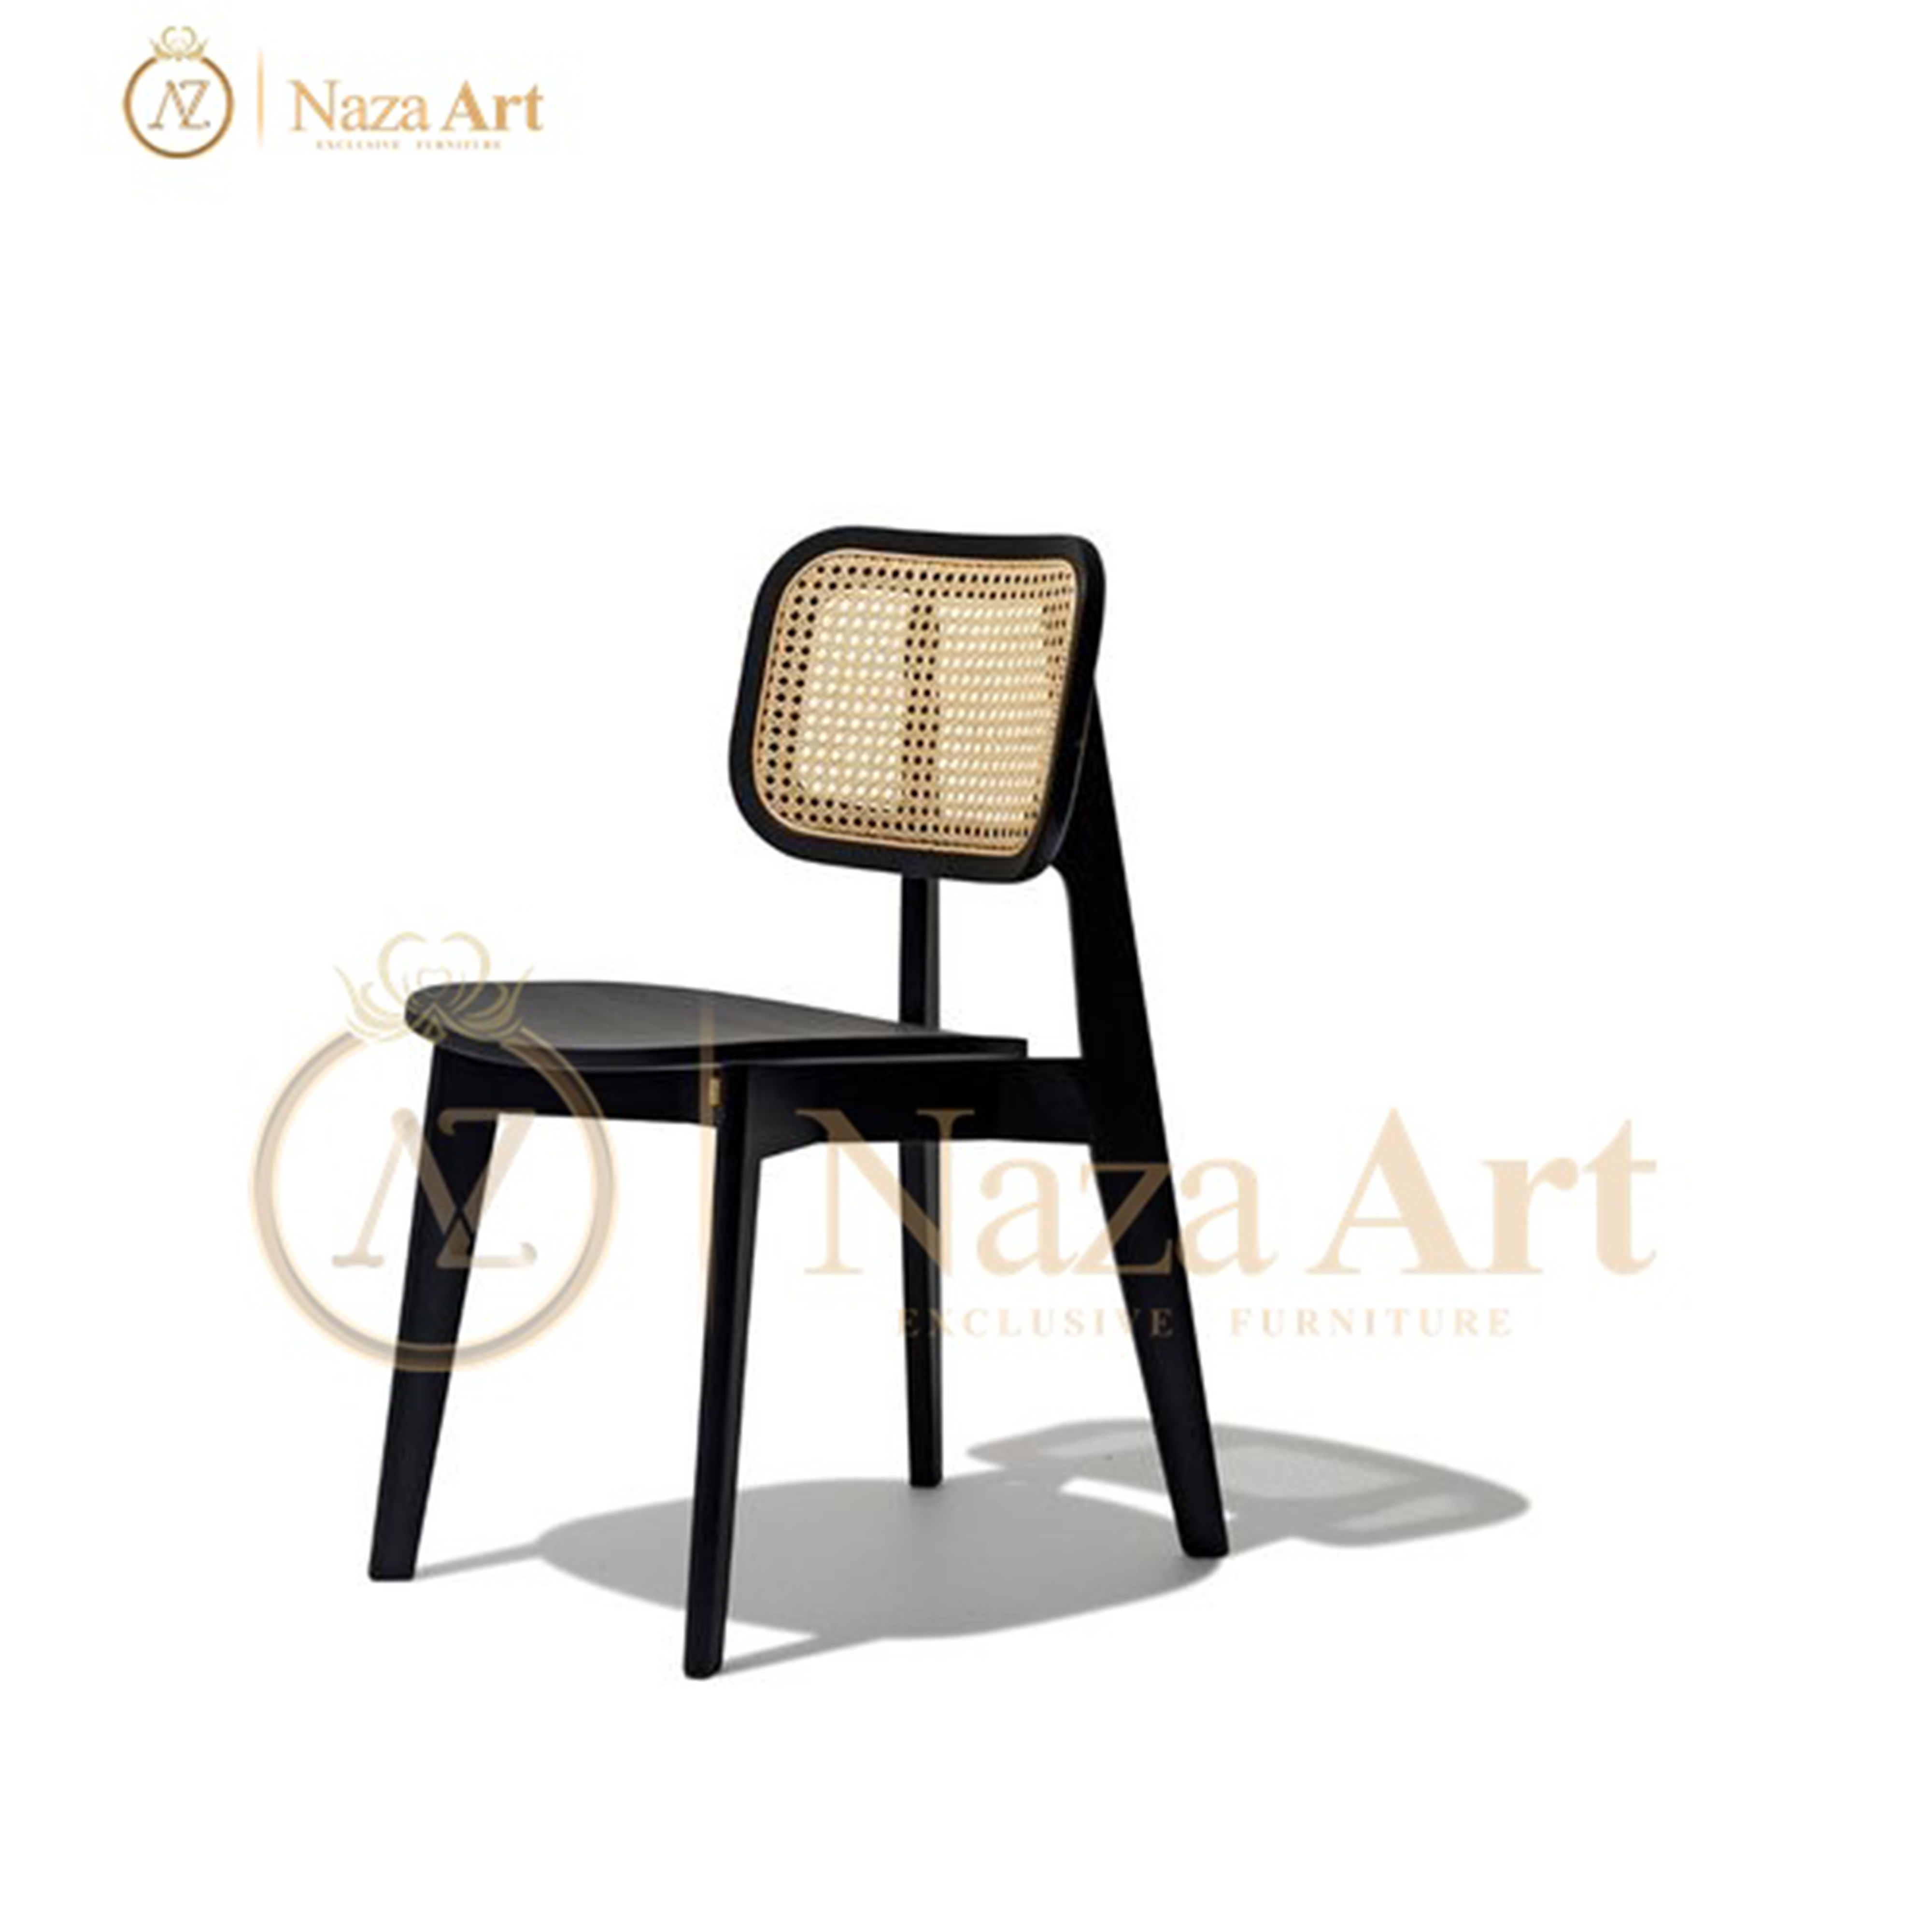 Wooden Cane Rattan Back Chair Antique Teak Wood Restaurant Chairs Buy Wooden Cane Back Chair Antique Teak Wood Chairs Cane Rattan Chair On Sale Product On Alibaba Com